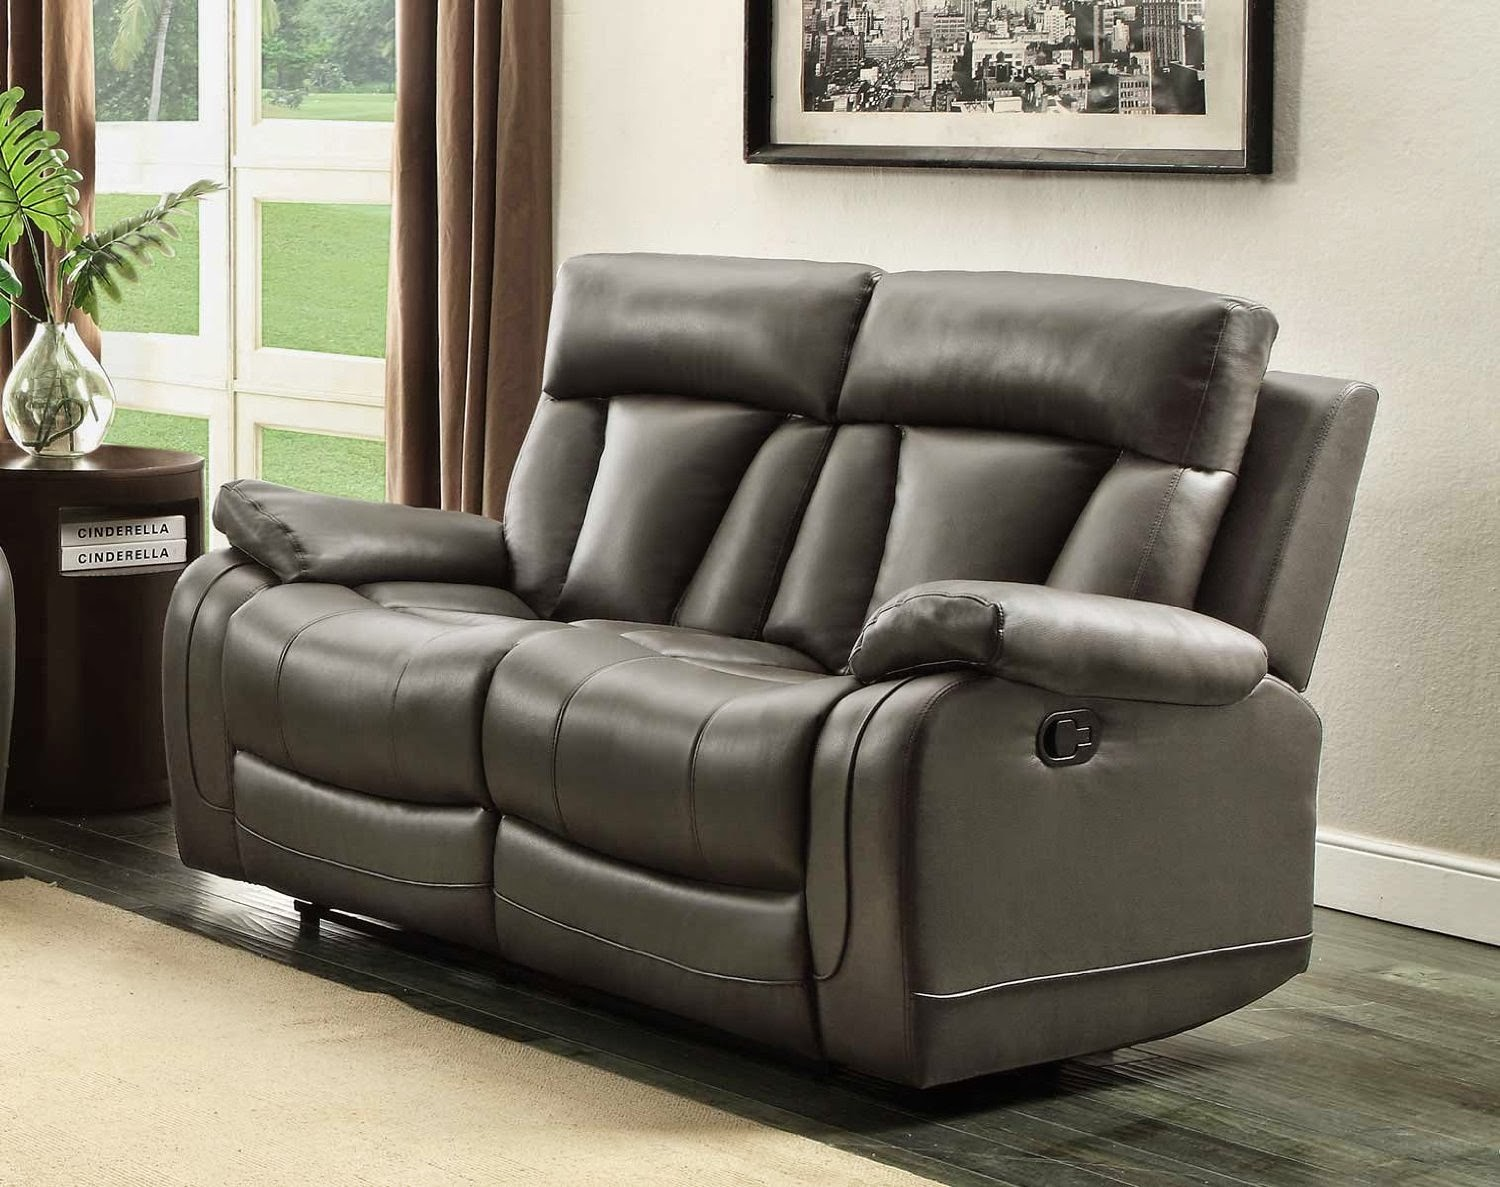 modena 2 seater reclining leather sofa heated snuggler best for the money vivaldi